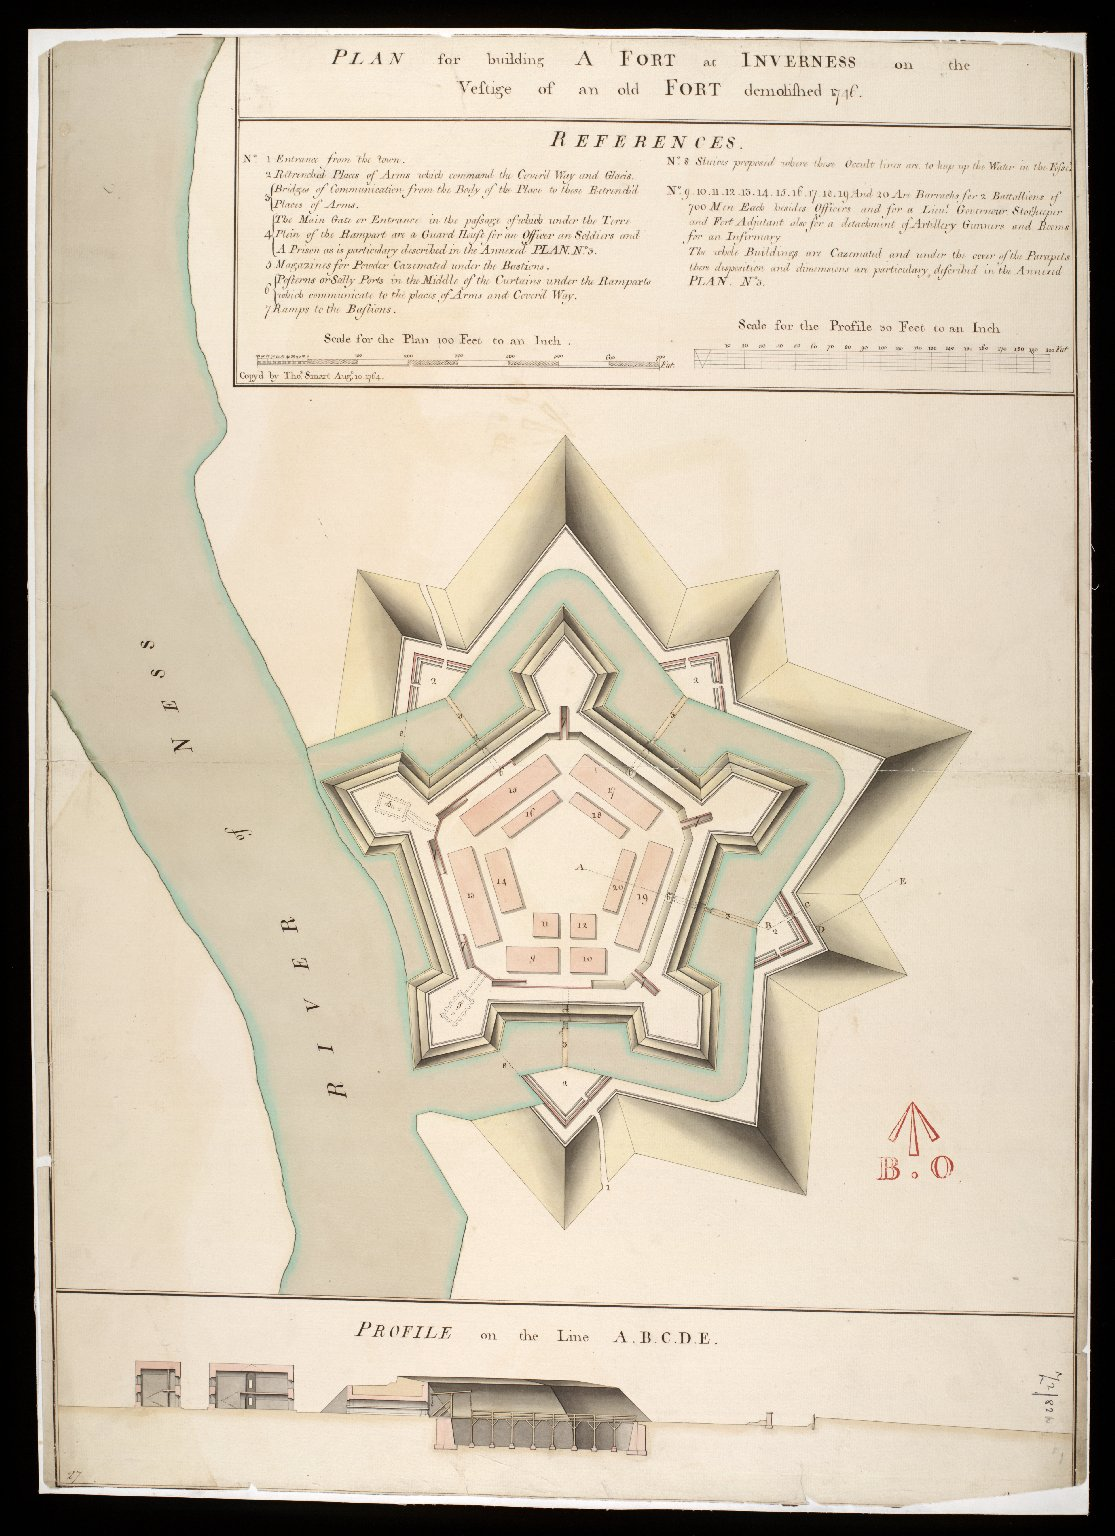 Plan for building a Fort at Inverness on the vestige of an old fort demolished 1746 [copy] [1 of 1]